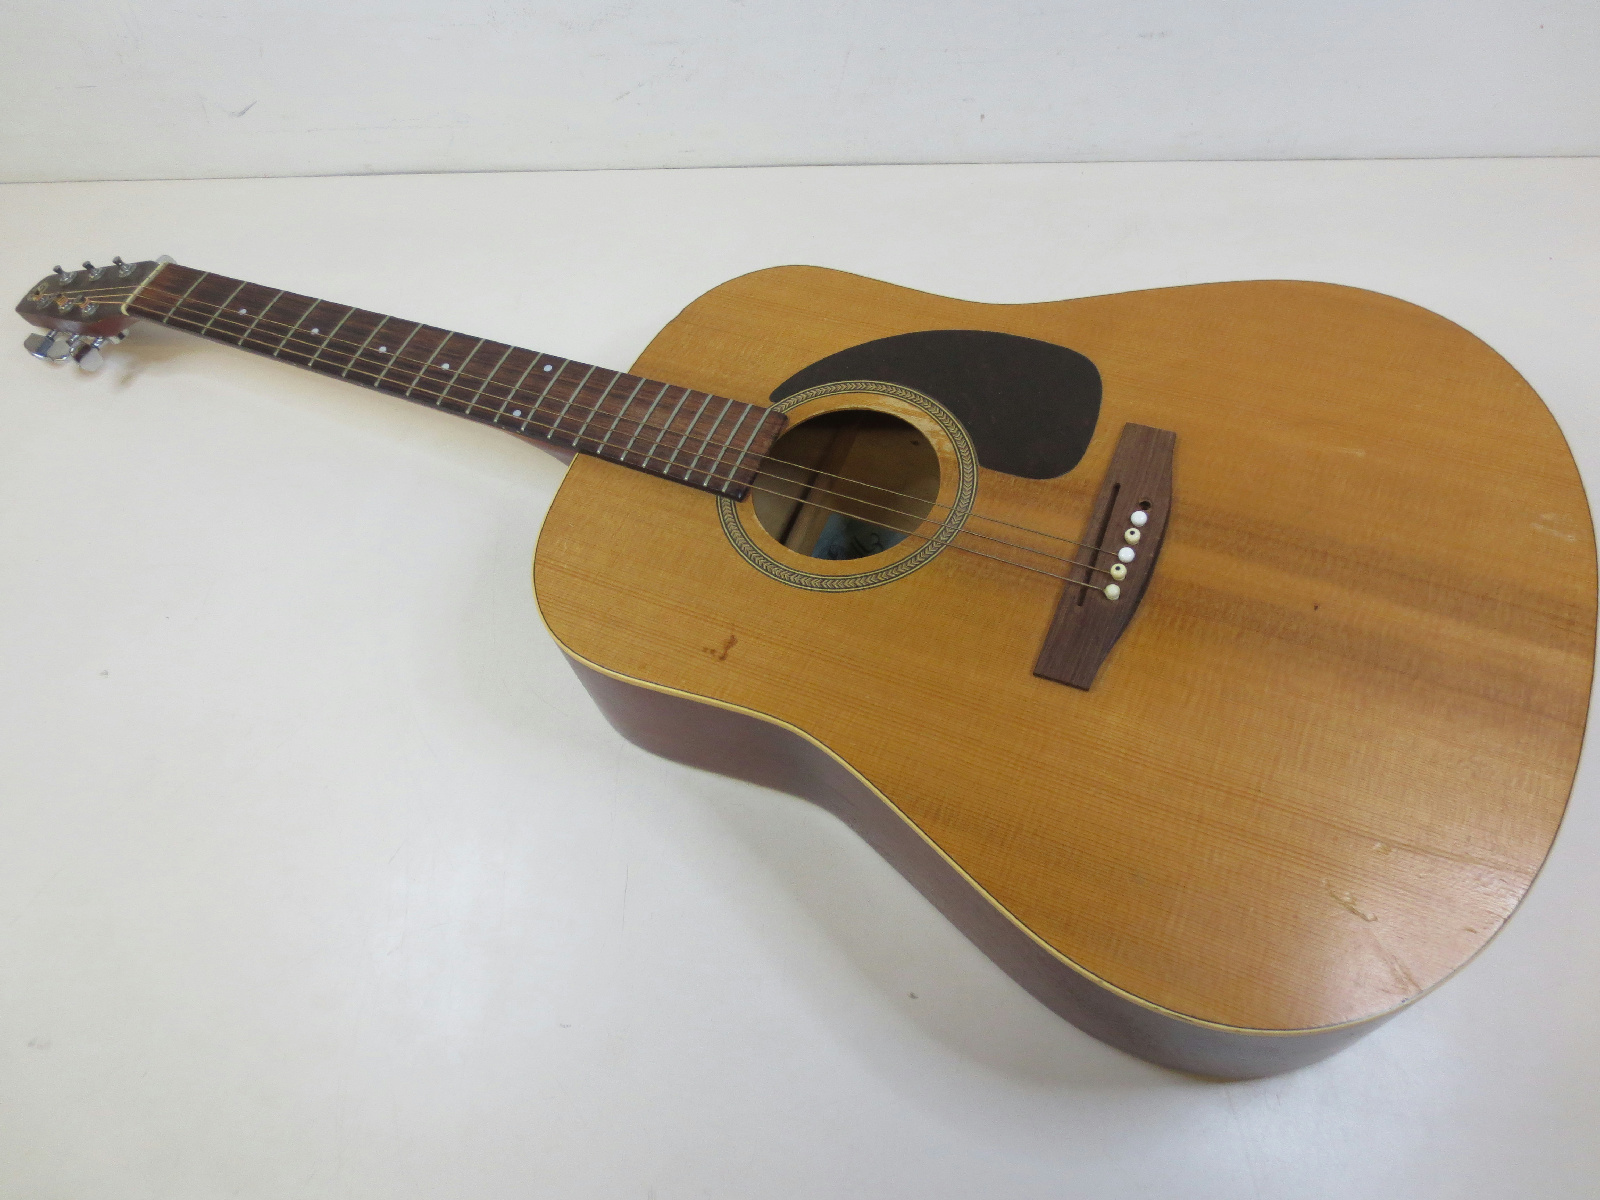 seagull s6 acoustic dreadnought guitar for repair needs saddle pin strings ebay. Black Bedroom Furniture Sets. Home Design Ideas